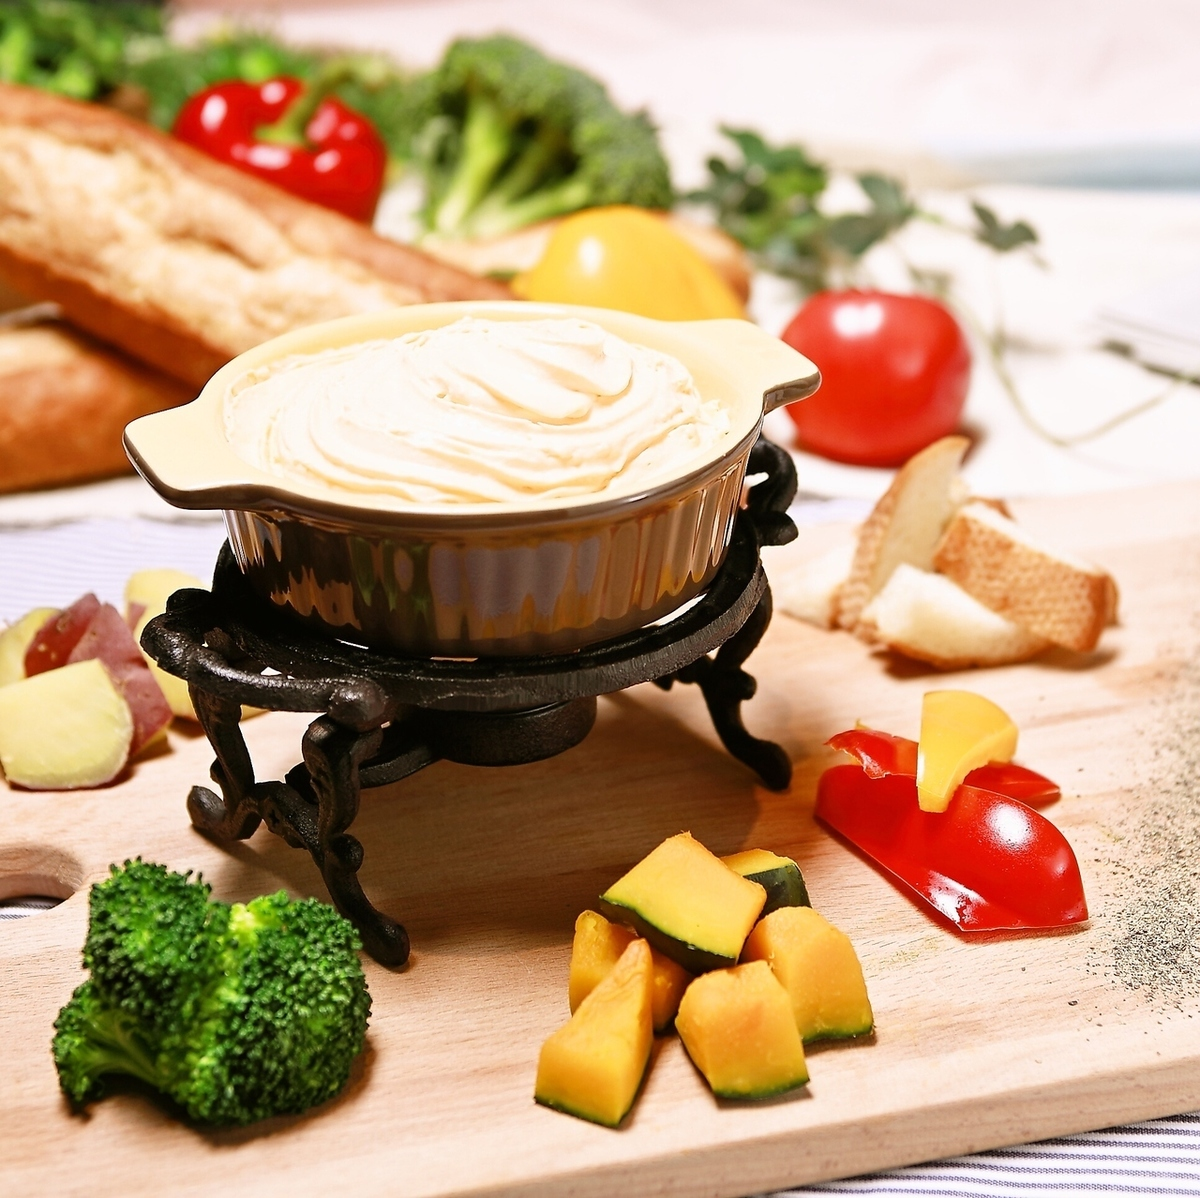 Fluffy cheese fondue